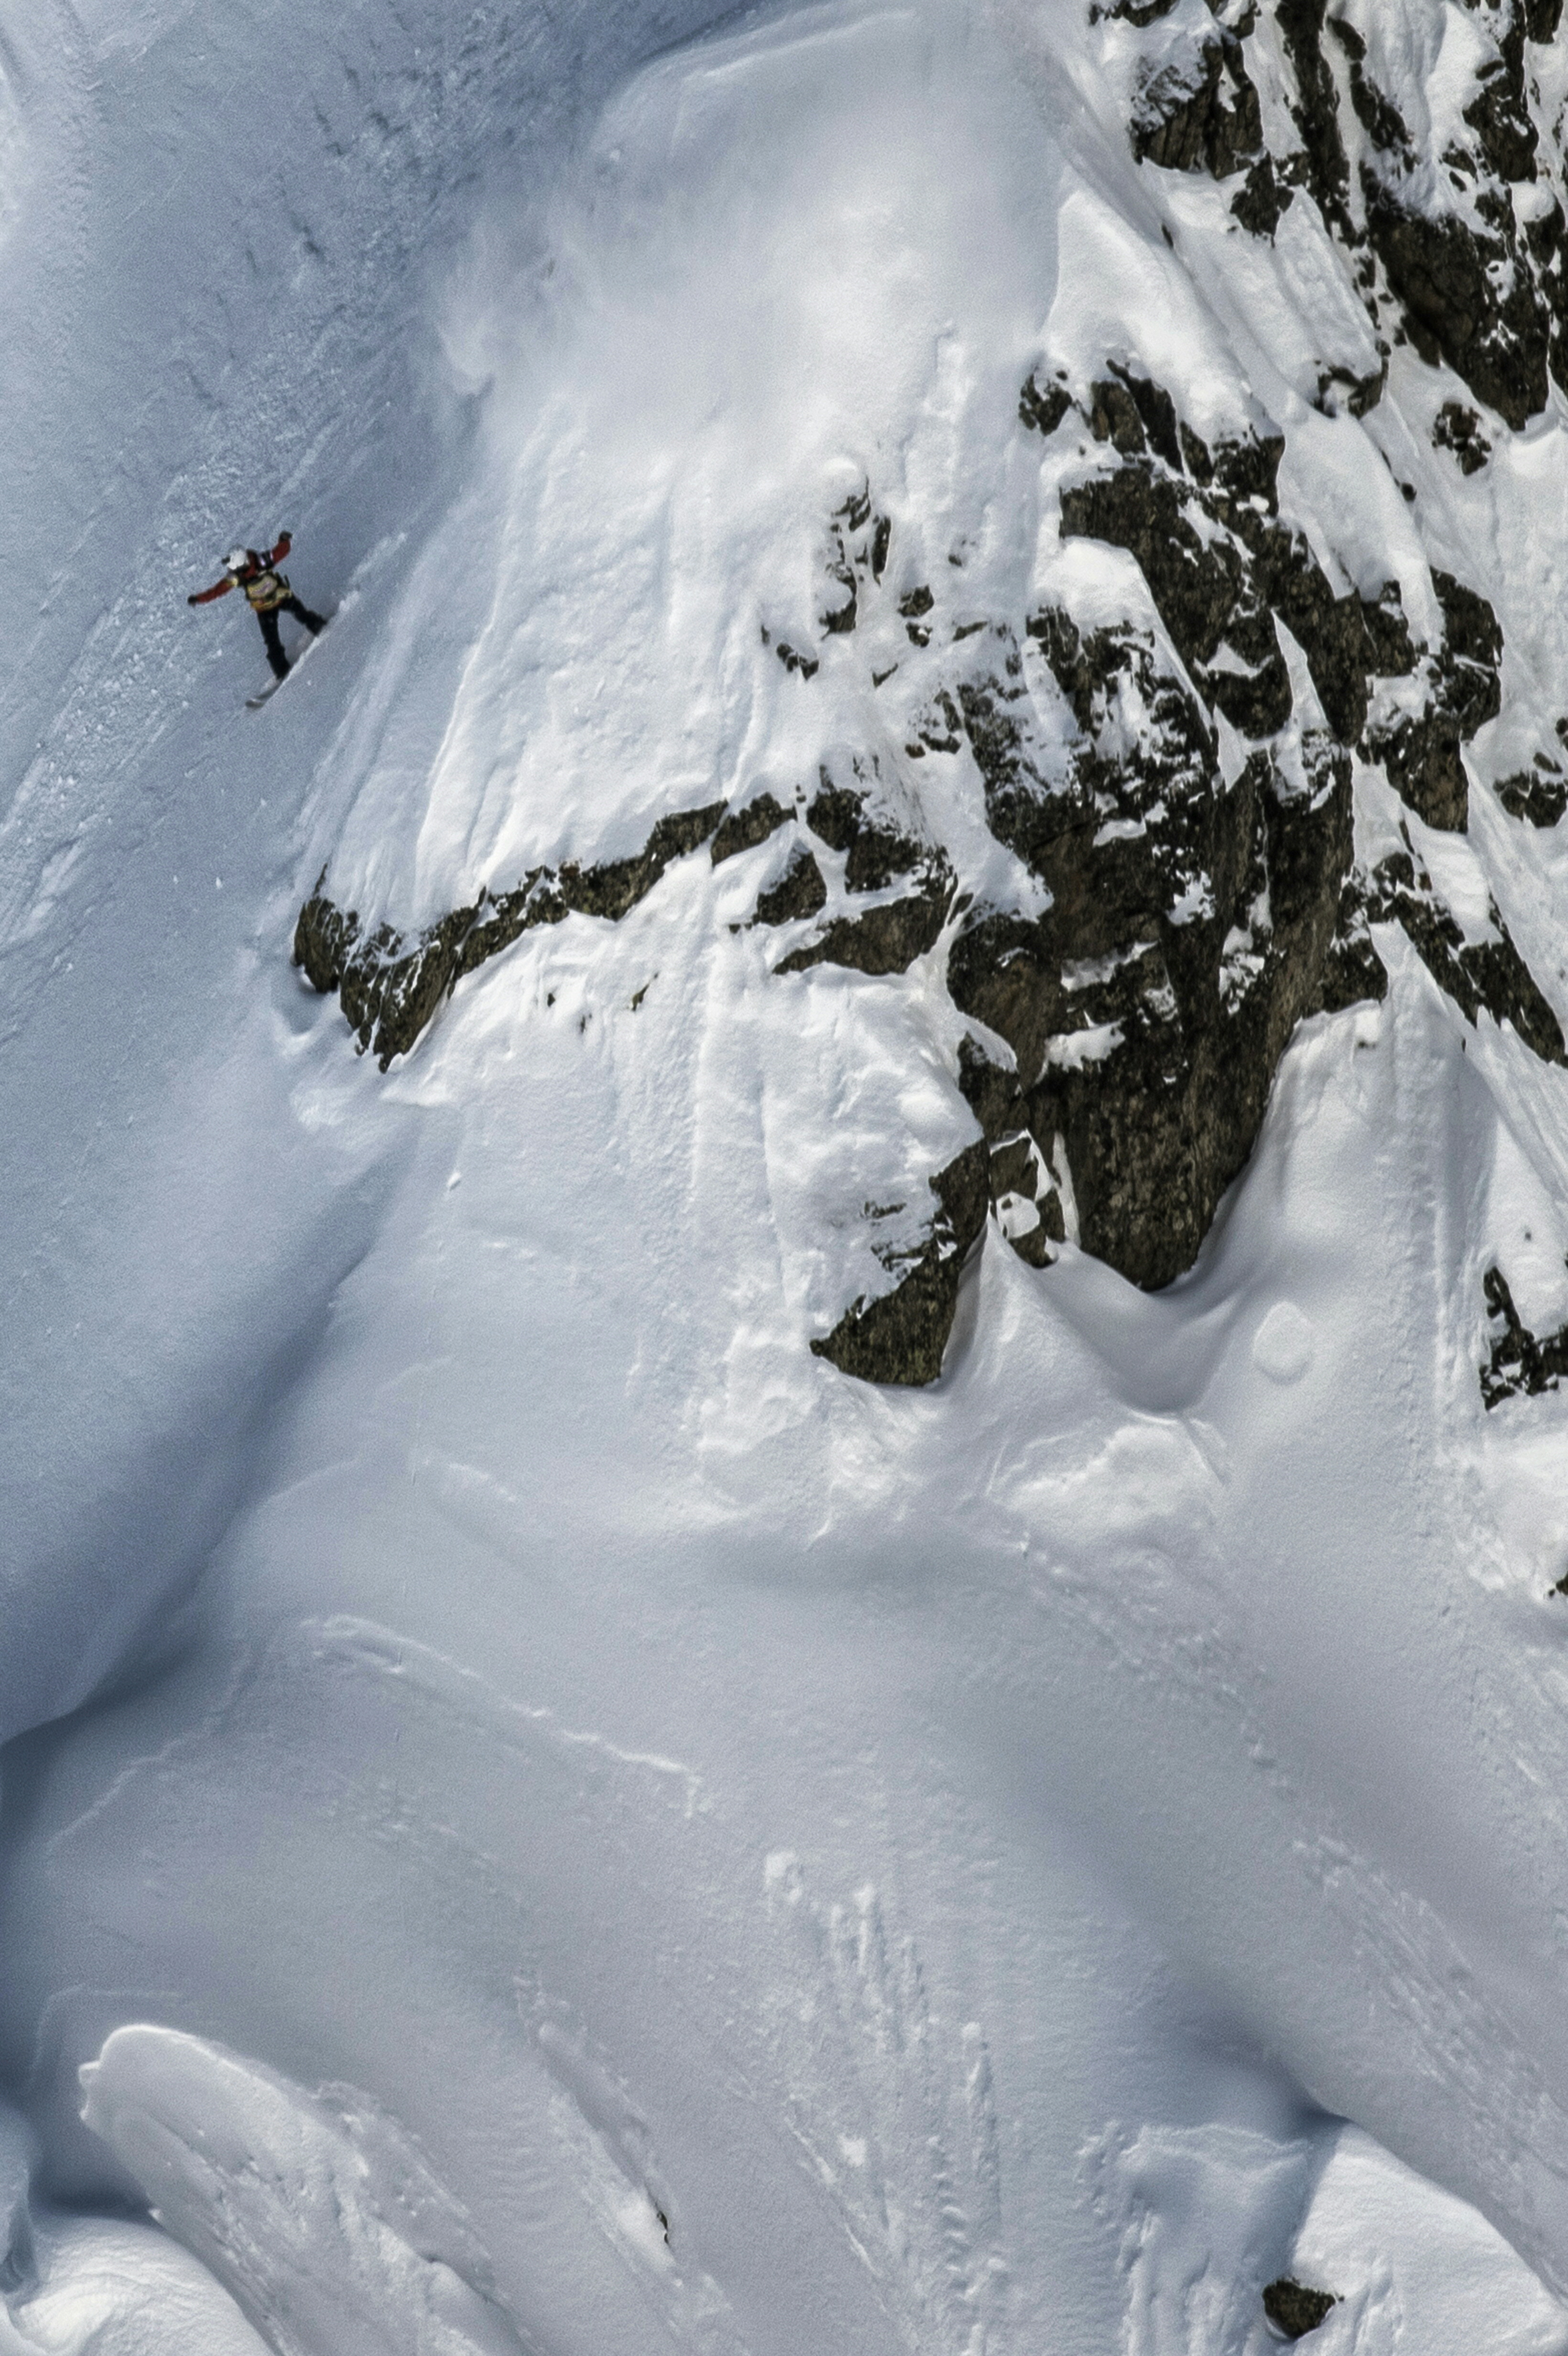 """A picture taken on February 5, 2016 shows France's Estelle Balet competing to win the wild face of """"l'Aiguille Pourrie"""" during a stage of the Swatch Freeride World Tour in Chamonix. An avalanche in the Swiss Alps on April 19, 2016 swept away two-time world extreme snowboard champion Estelle Balet to her death, police said. The 21-year-old Swiss woman, who had won her second title on the Freeride World Tour only two weeks ago, was making a film when she was killed, Swiss police said in a statement. Balet was speeding down a slope on her snowboard when the avalanche started and carried her away, police added. / AFP PHOTO / JEFF PACHOUD"""